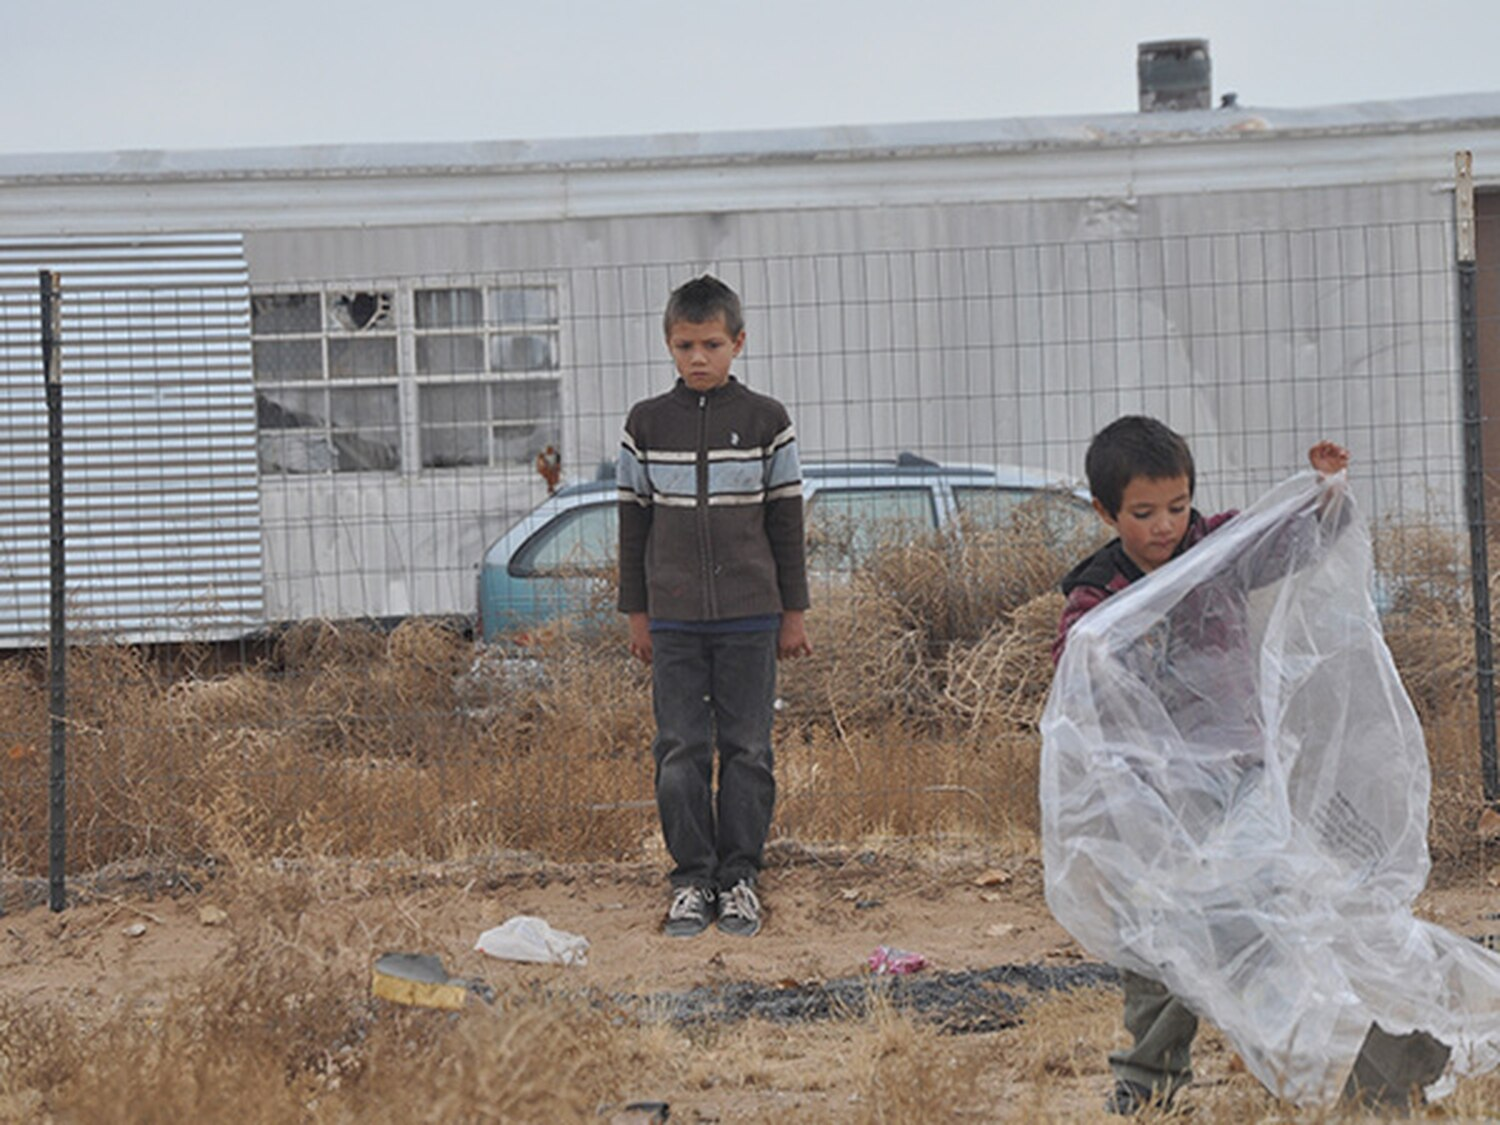 Brian (13, up against fence) and Dylan (8, with plastic bag) Padilla cleaning up their yard.